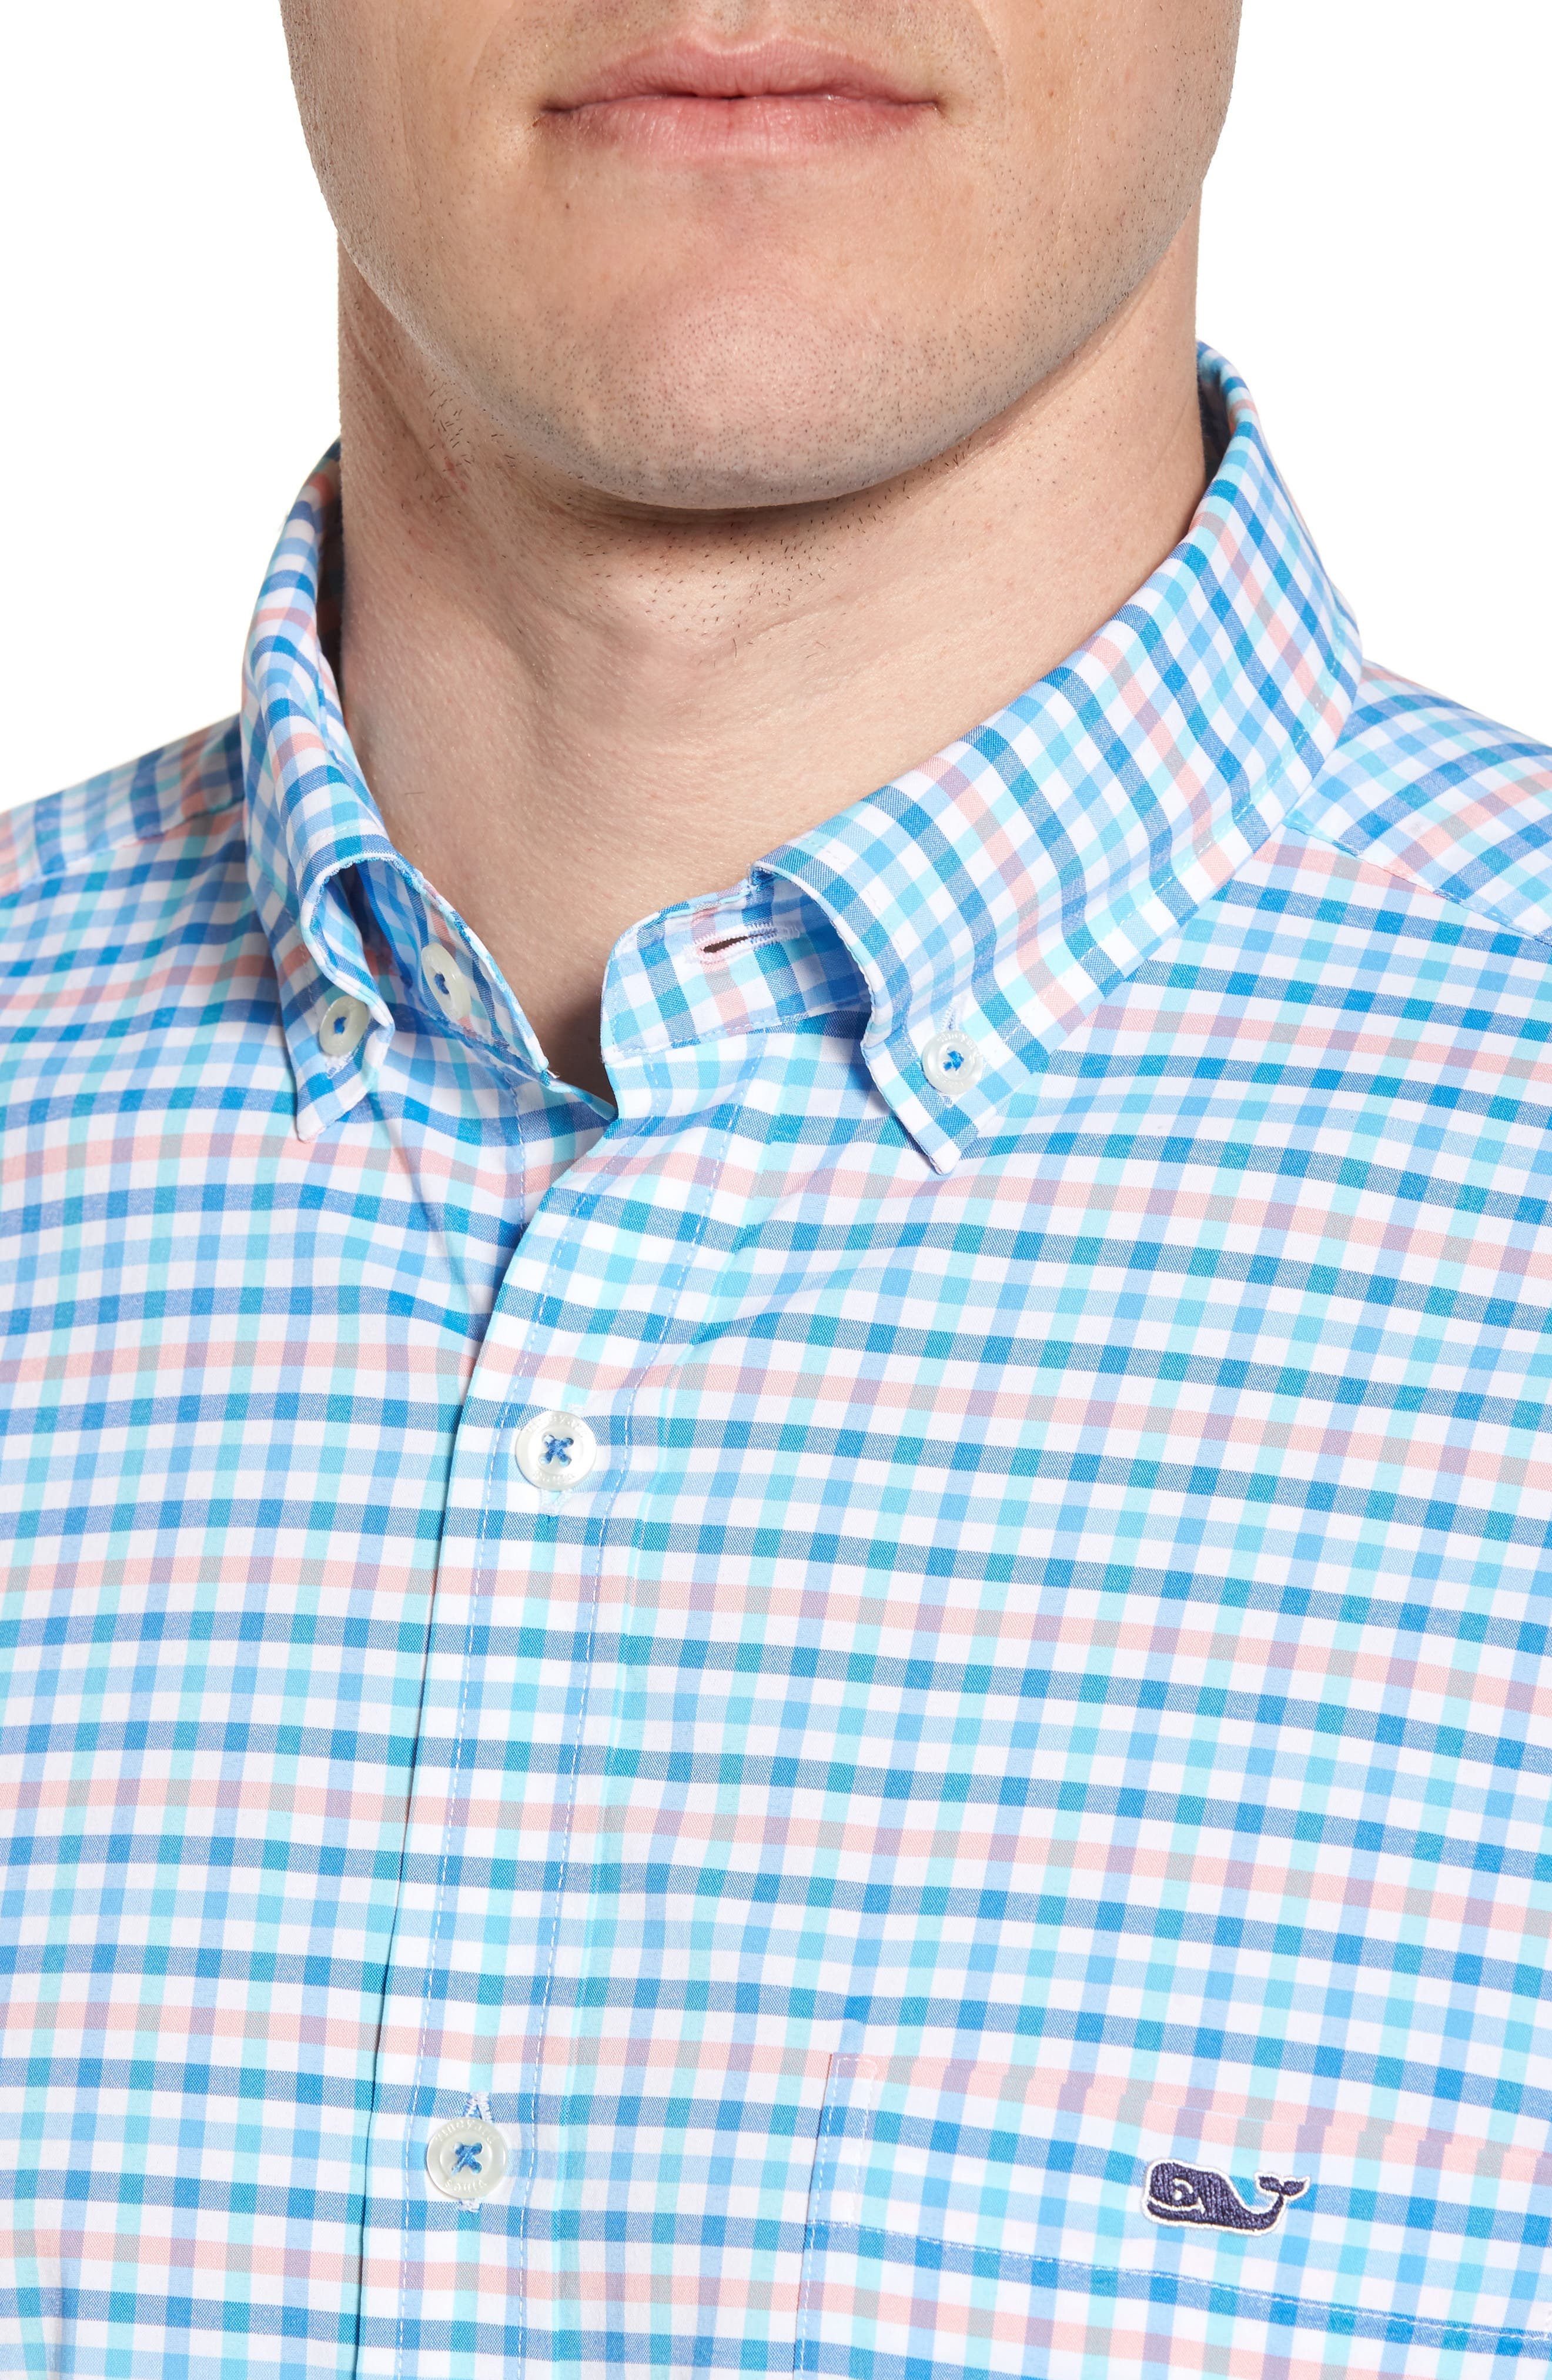 Coco Bay Classic Fit Check Performance Sport Shirt,                             Alternate thumbnail 4, color,                             484